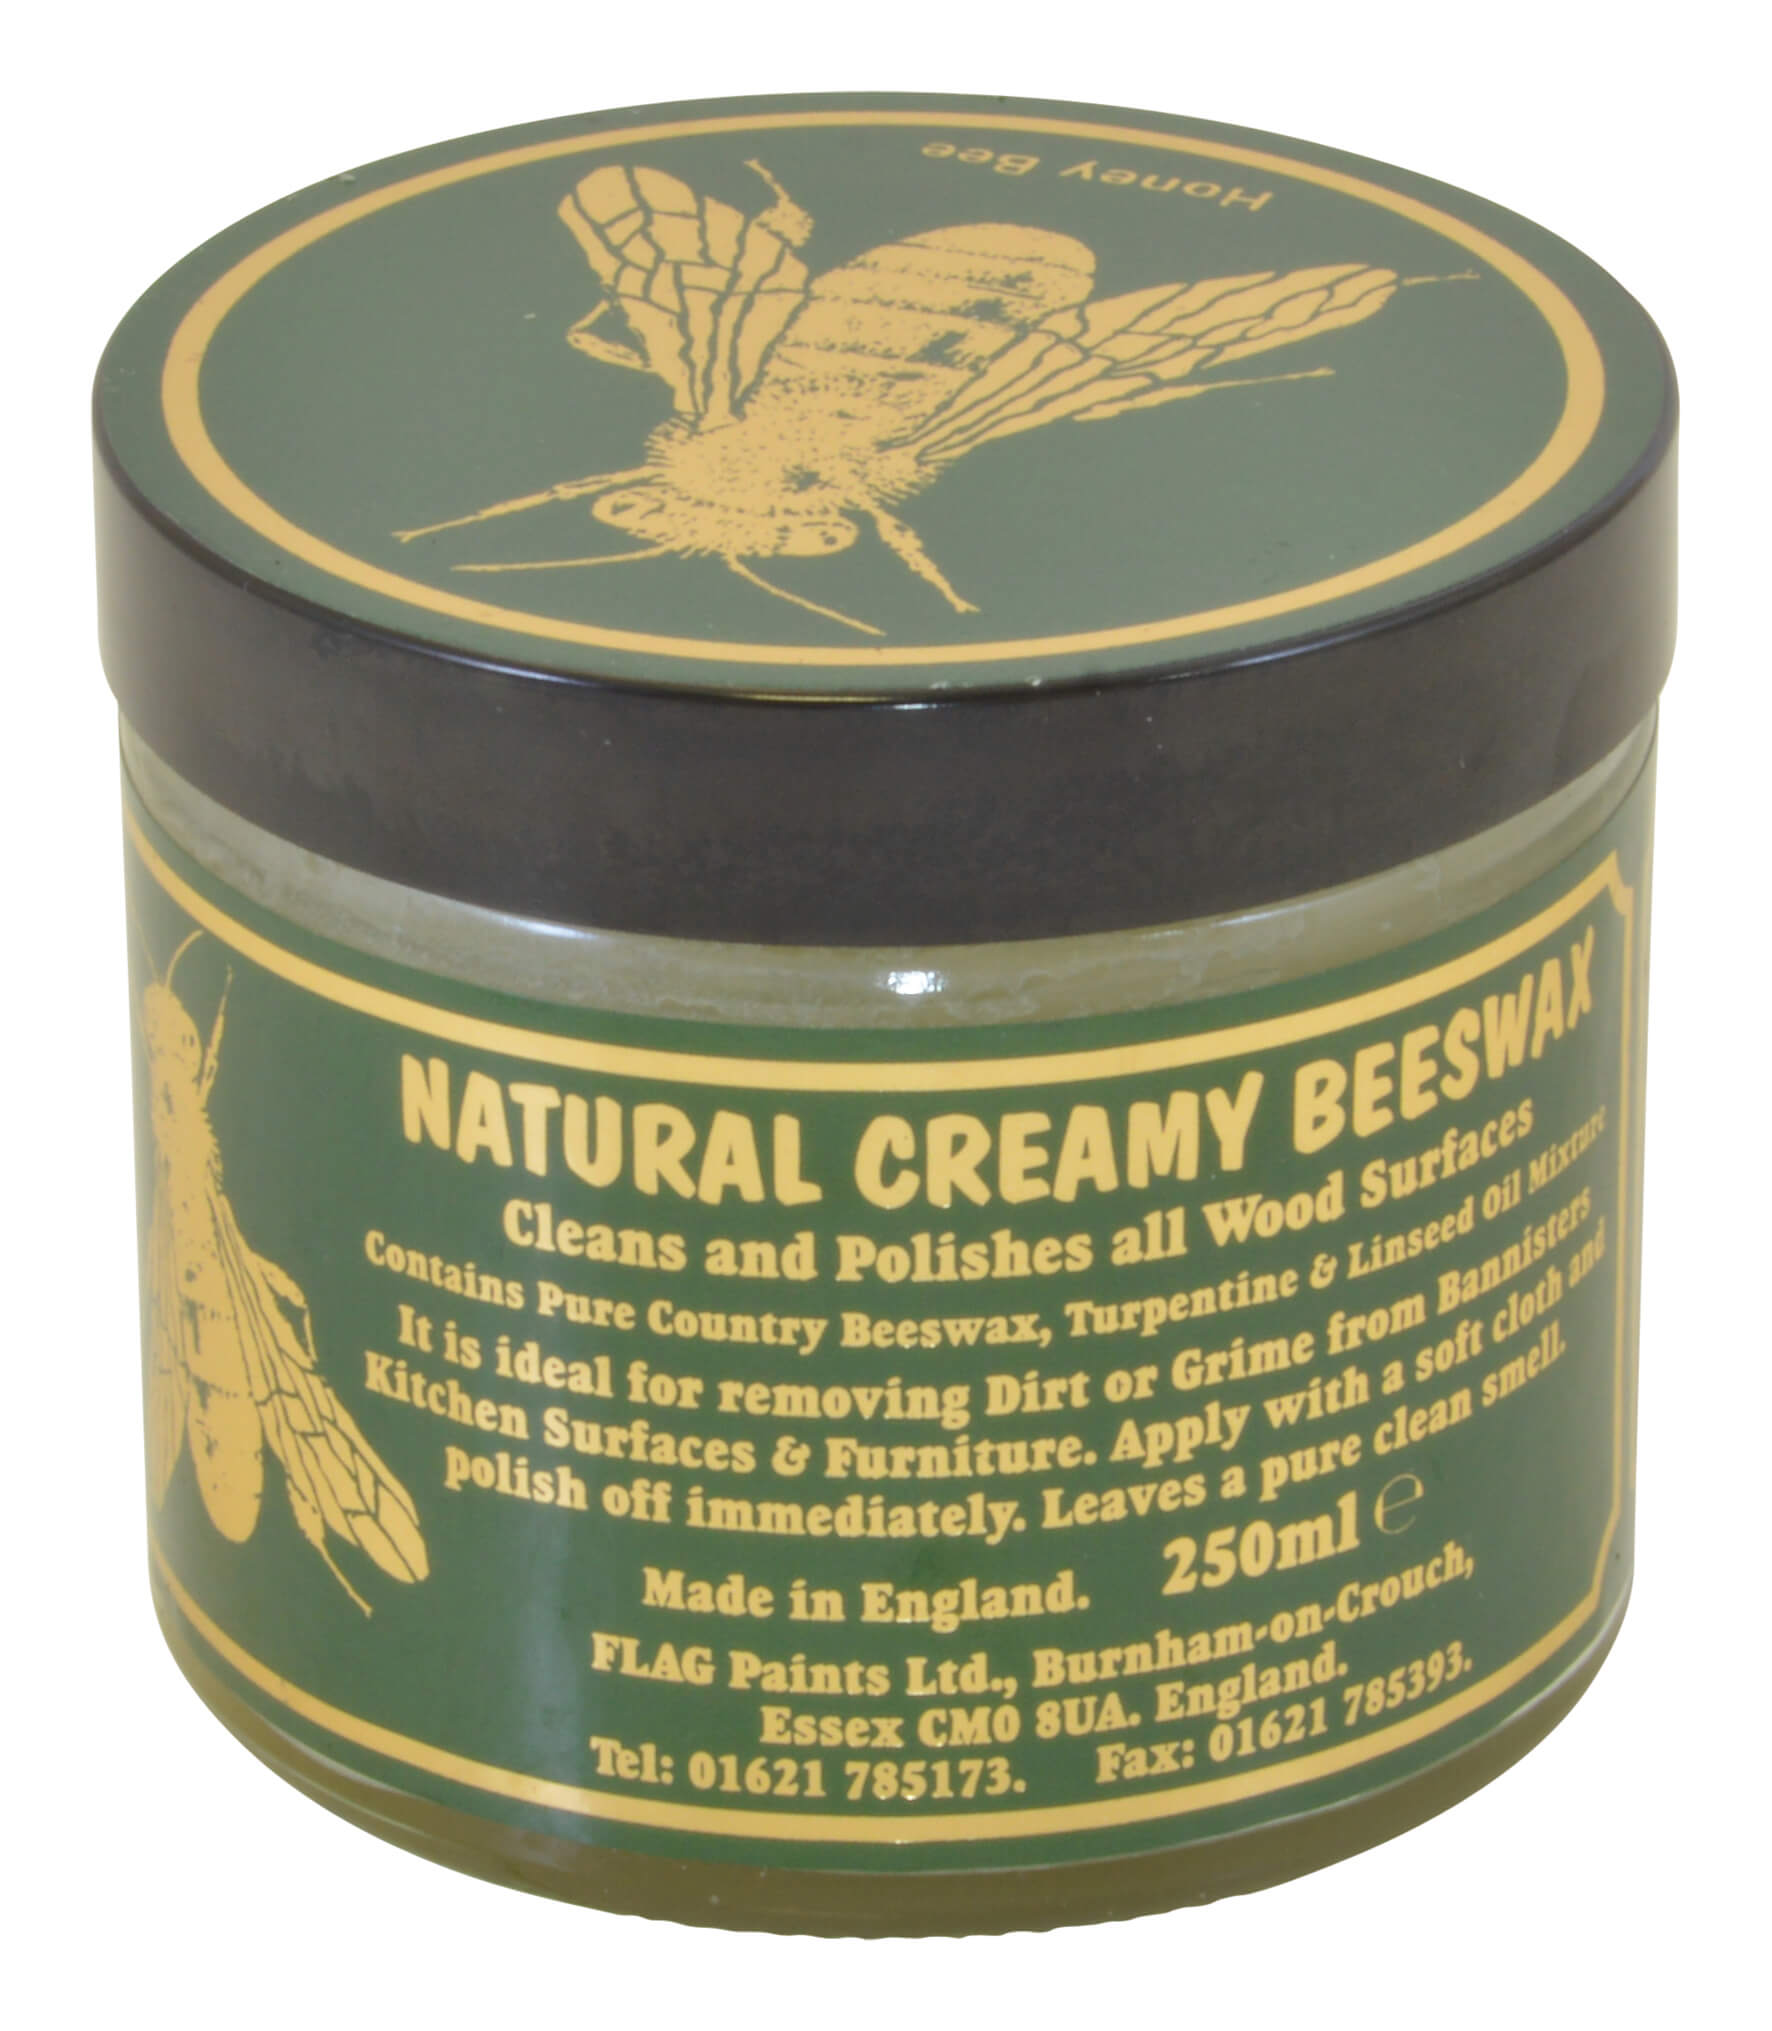 Natural Creamy Beeswax - 250ml